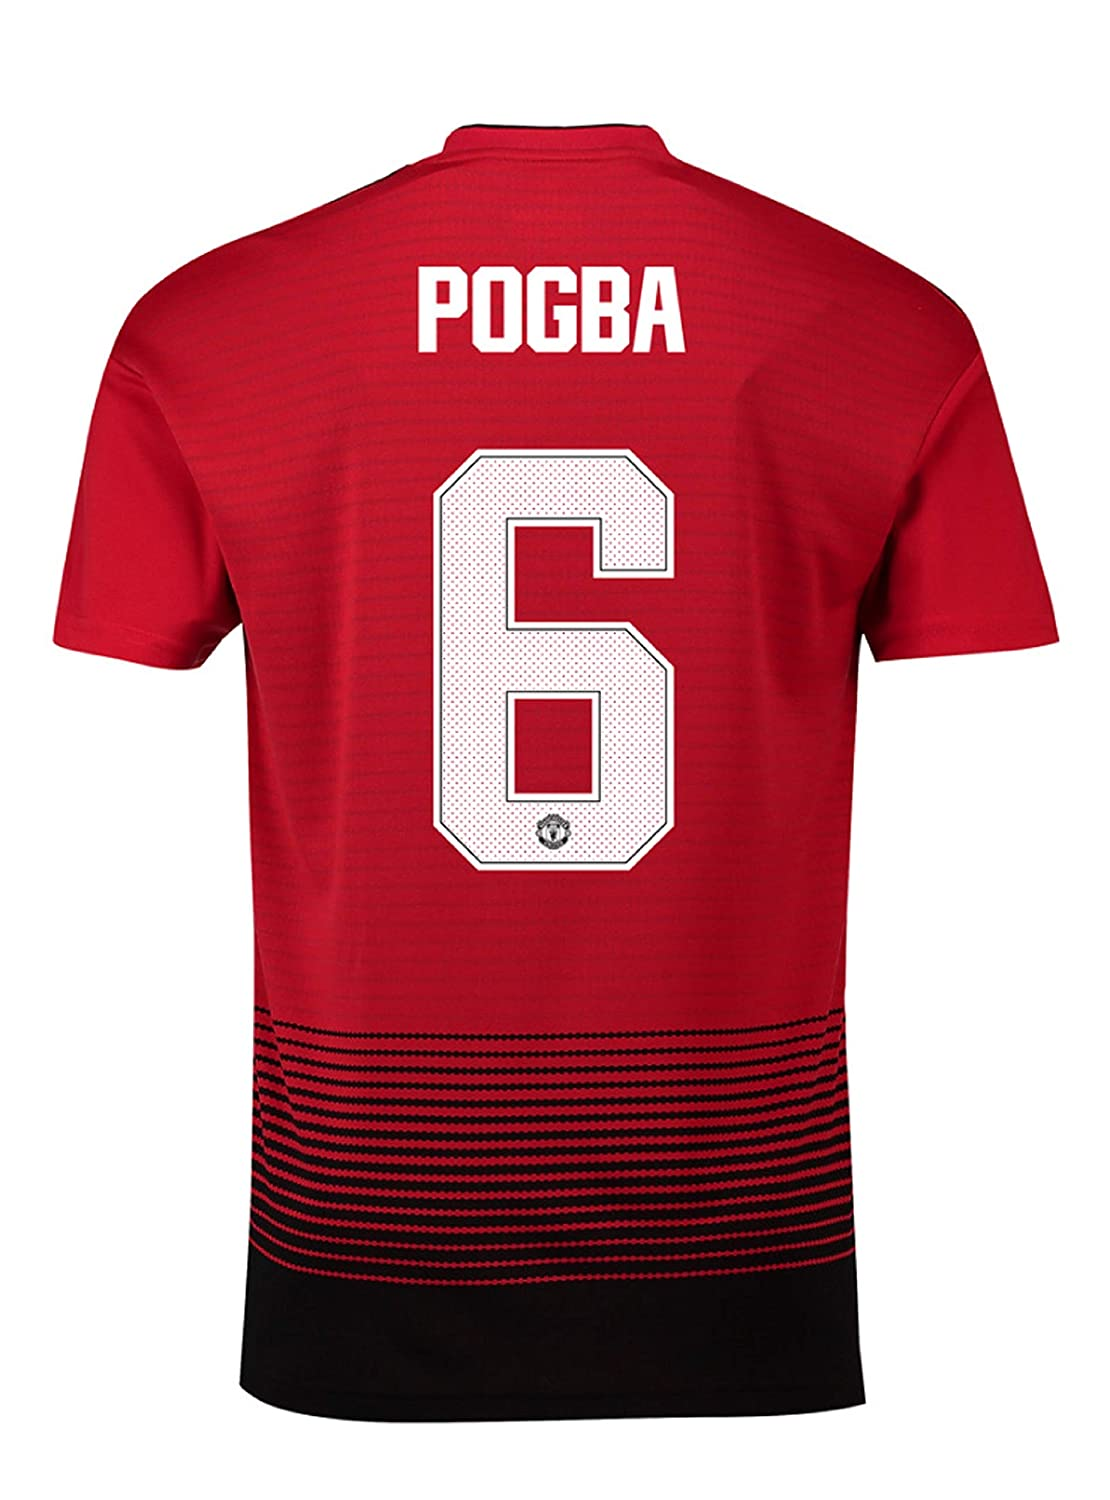 d440f0b5210 Manchester United FC Official Football Gift Mens Pogba 6 Home Kit Shirt  Medium  Amazon.co.uk  Clothing